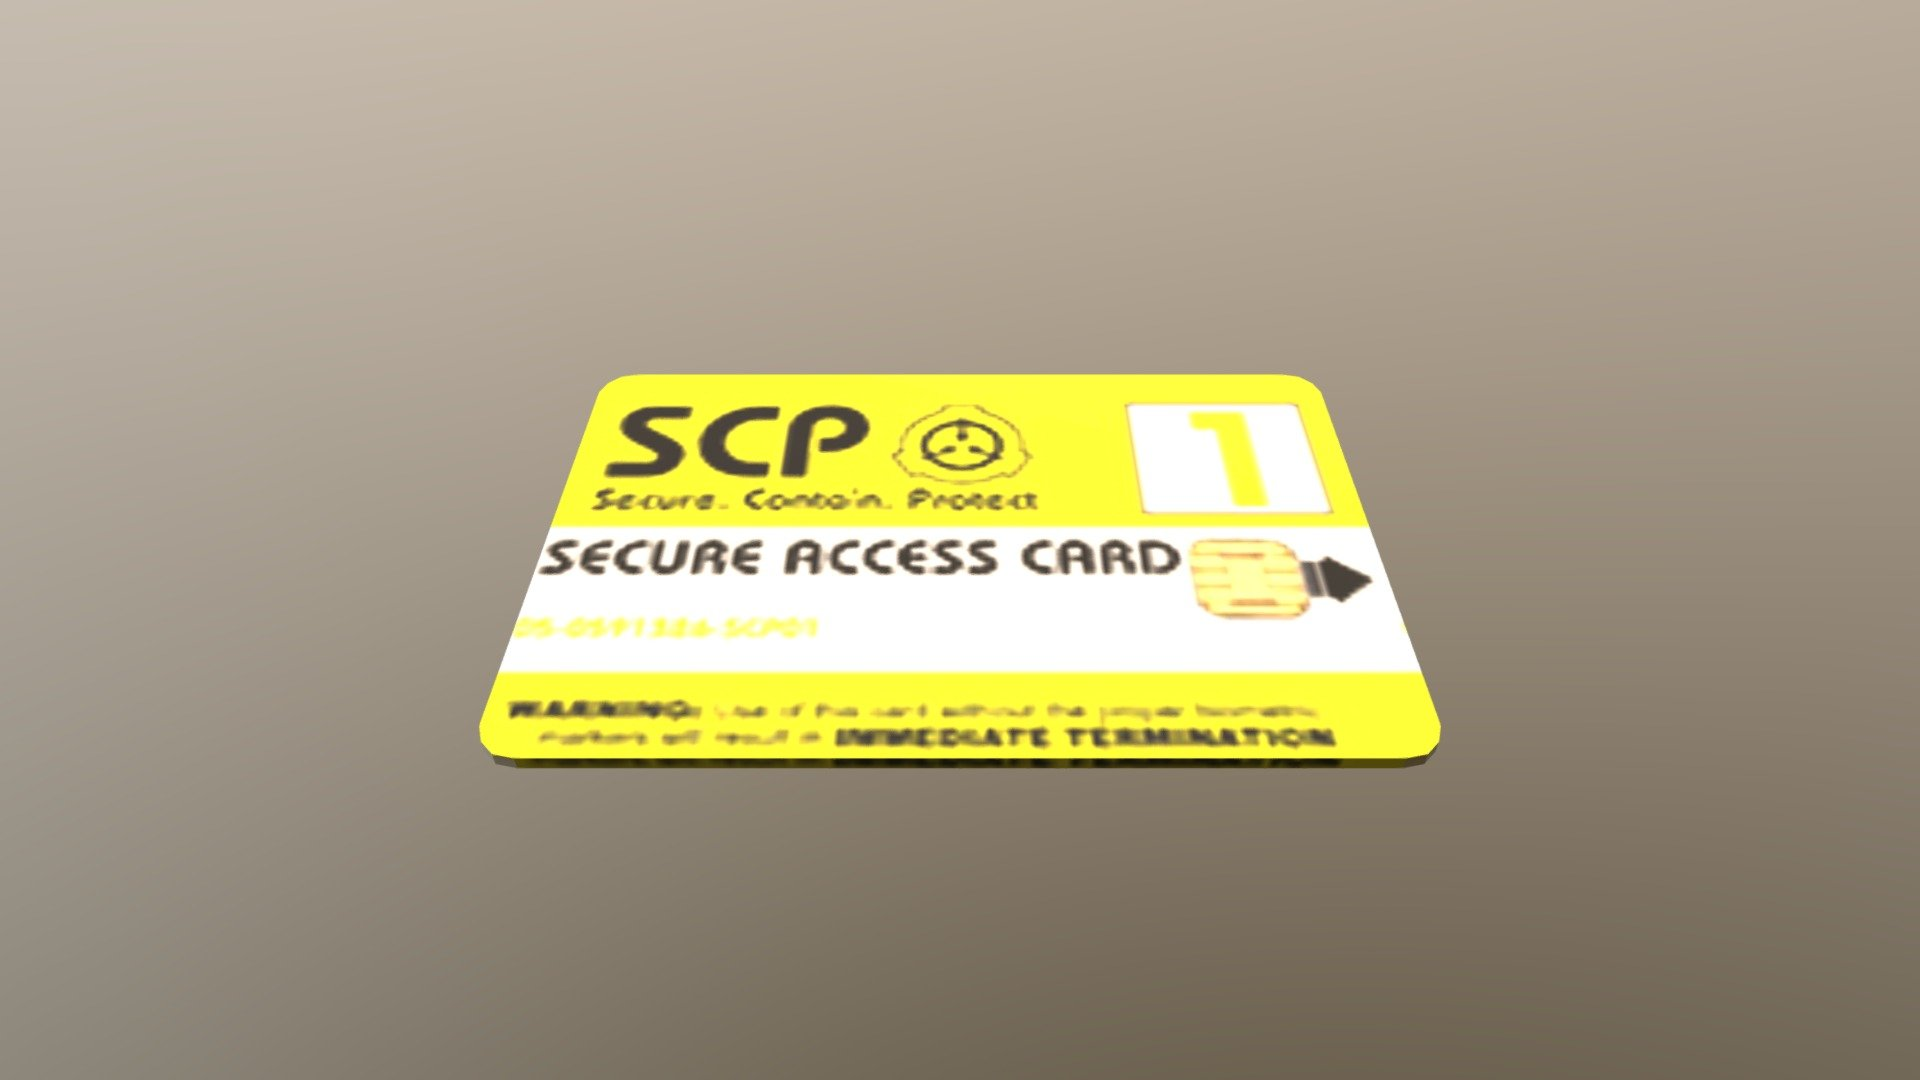 Military Vehicles For Sale >> SCP Key Card (Multi texture) - Download Free 3D model by Maxime66410 (@max66410) - Sketchfab